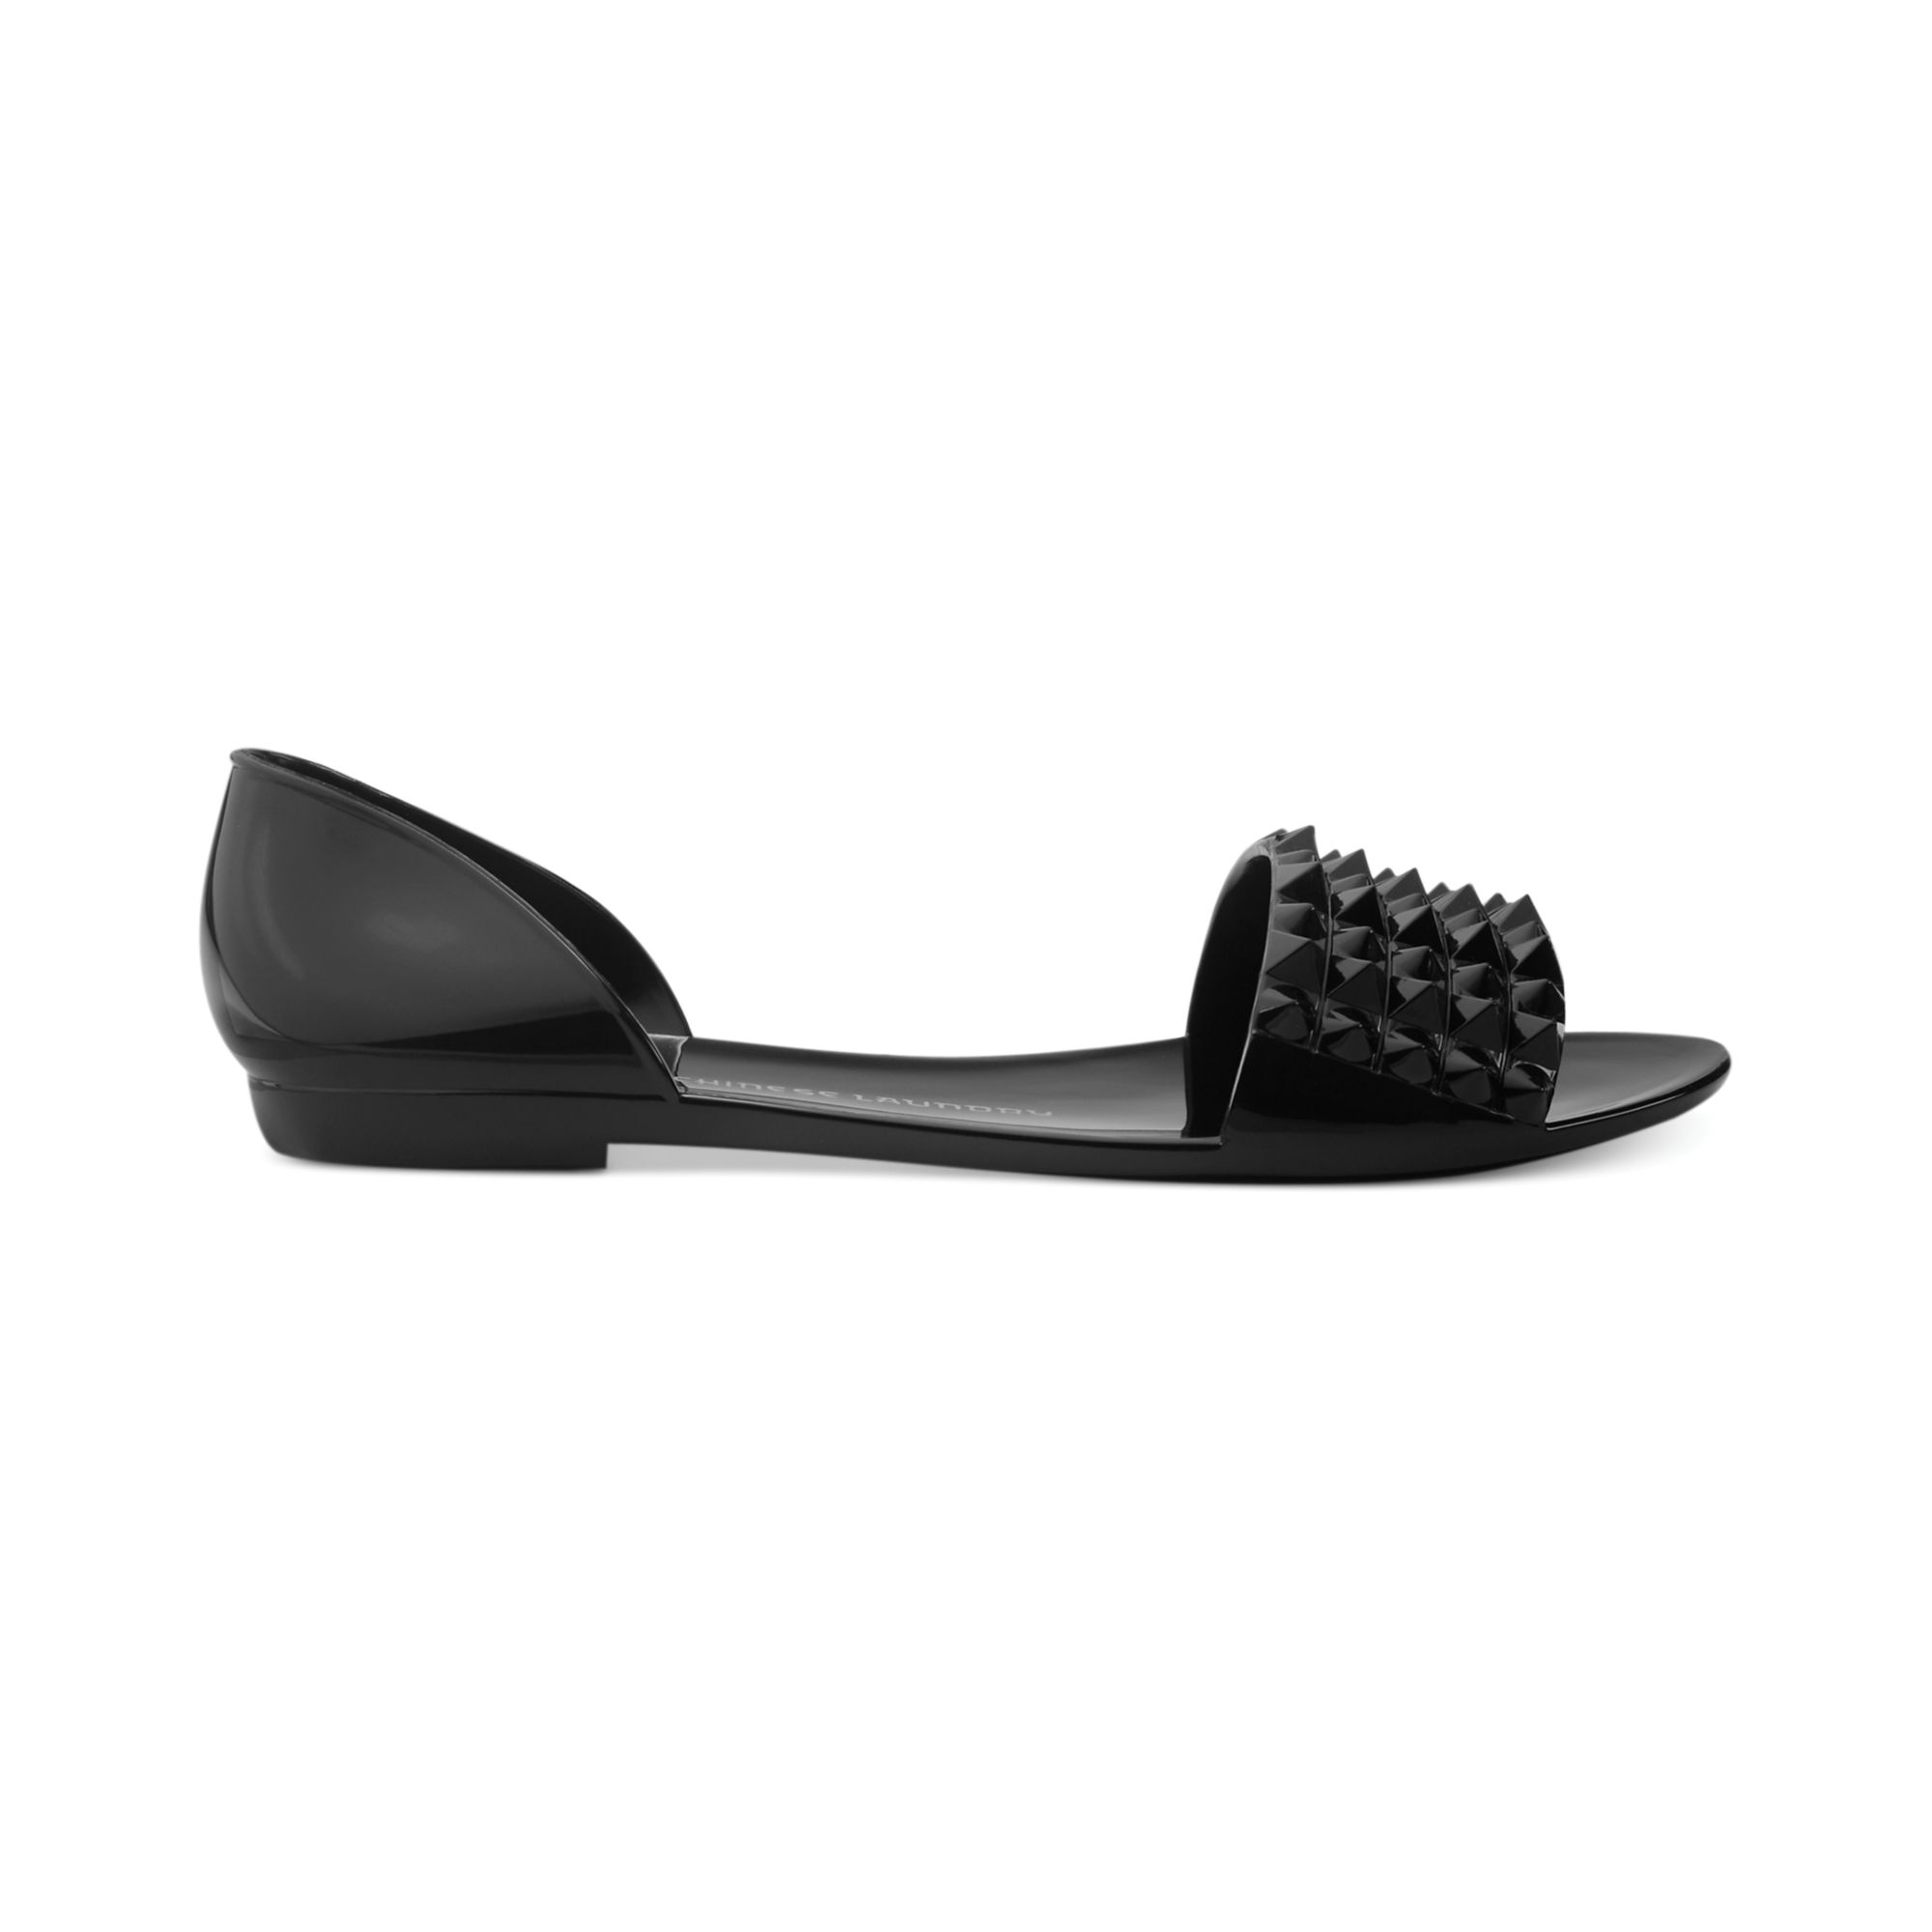 82bf0239f101 Lyst - Chinese Laundry Rocking Jelly Sandals in Black